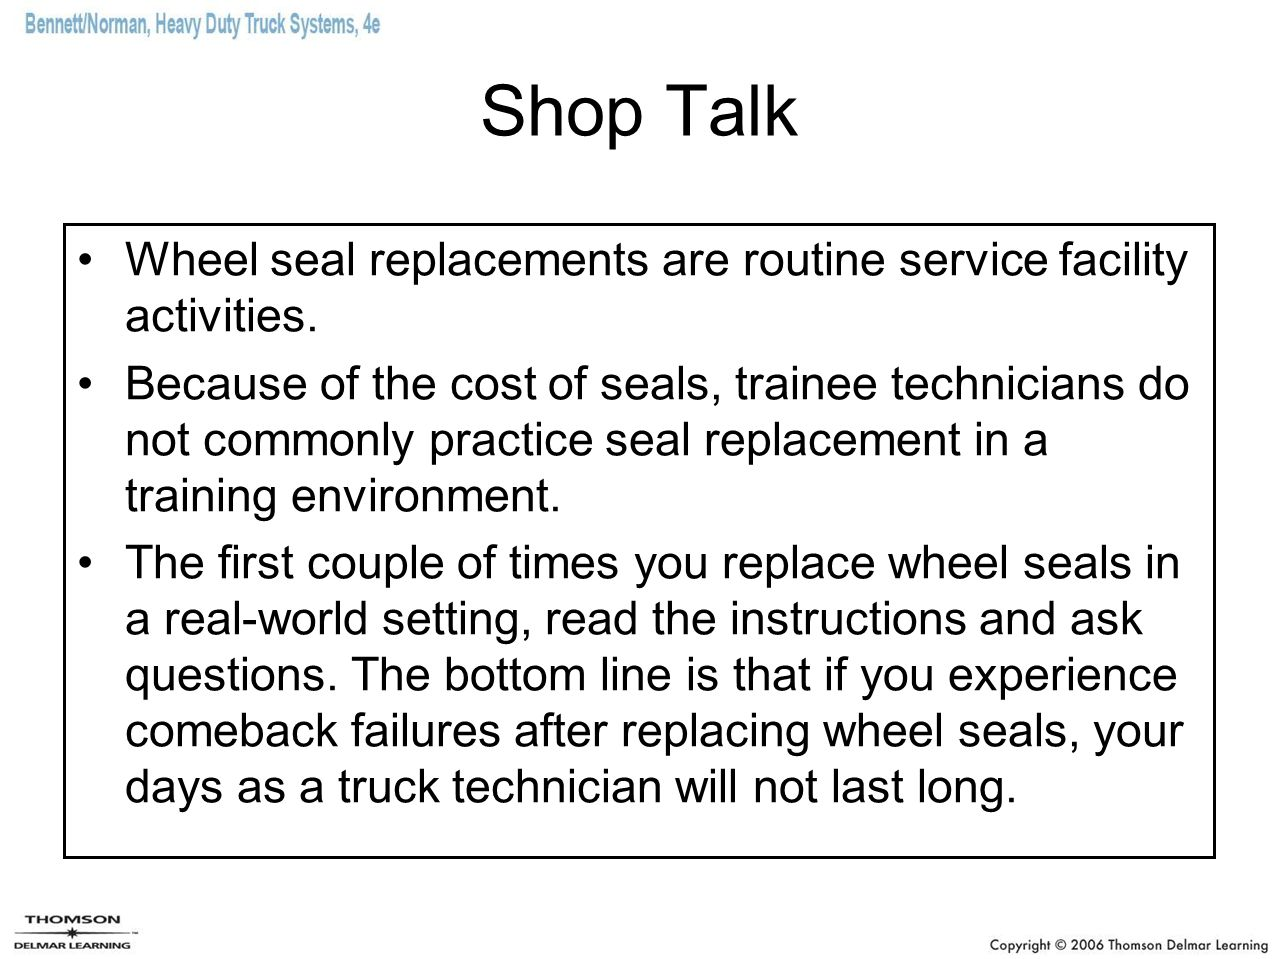 Shop Talk Wheel seal replacements are routine service facility activities. Because of the cost of seals, trainee technicians do not commonly practice